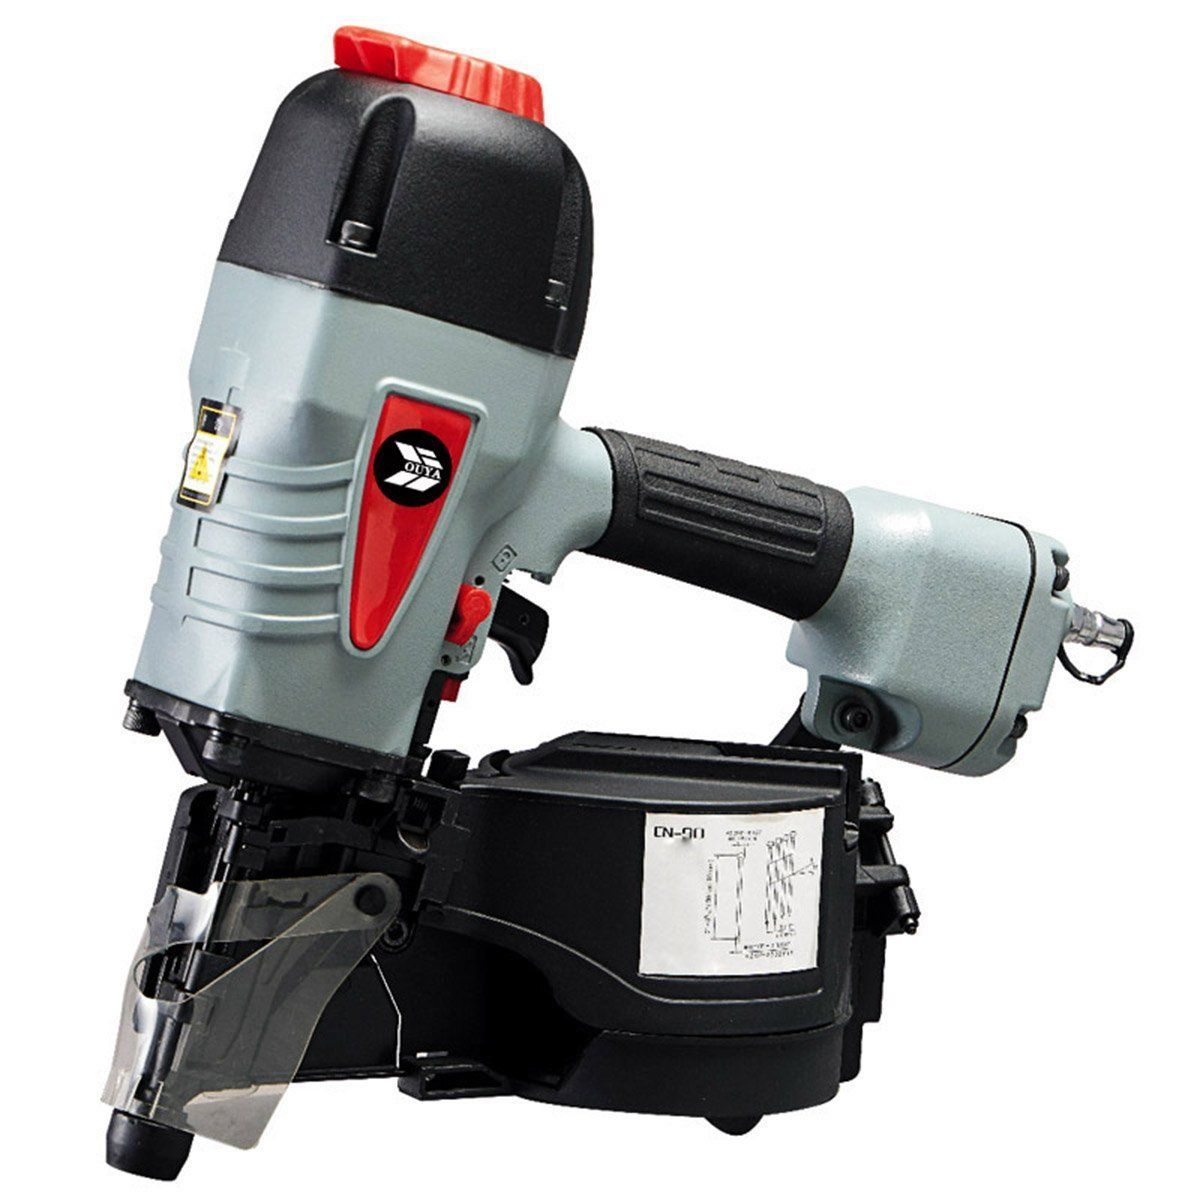 Ouya Cn90 10 1 4 Gauge 3 1 2 Inches Air Coil Roofing Nailer Kit You Can Get Additional Details At The Image Link Roofing Nailer Coil Nailer Nailer